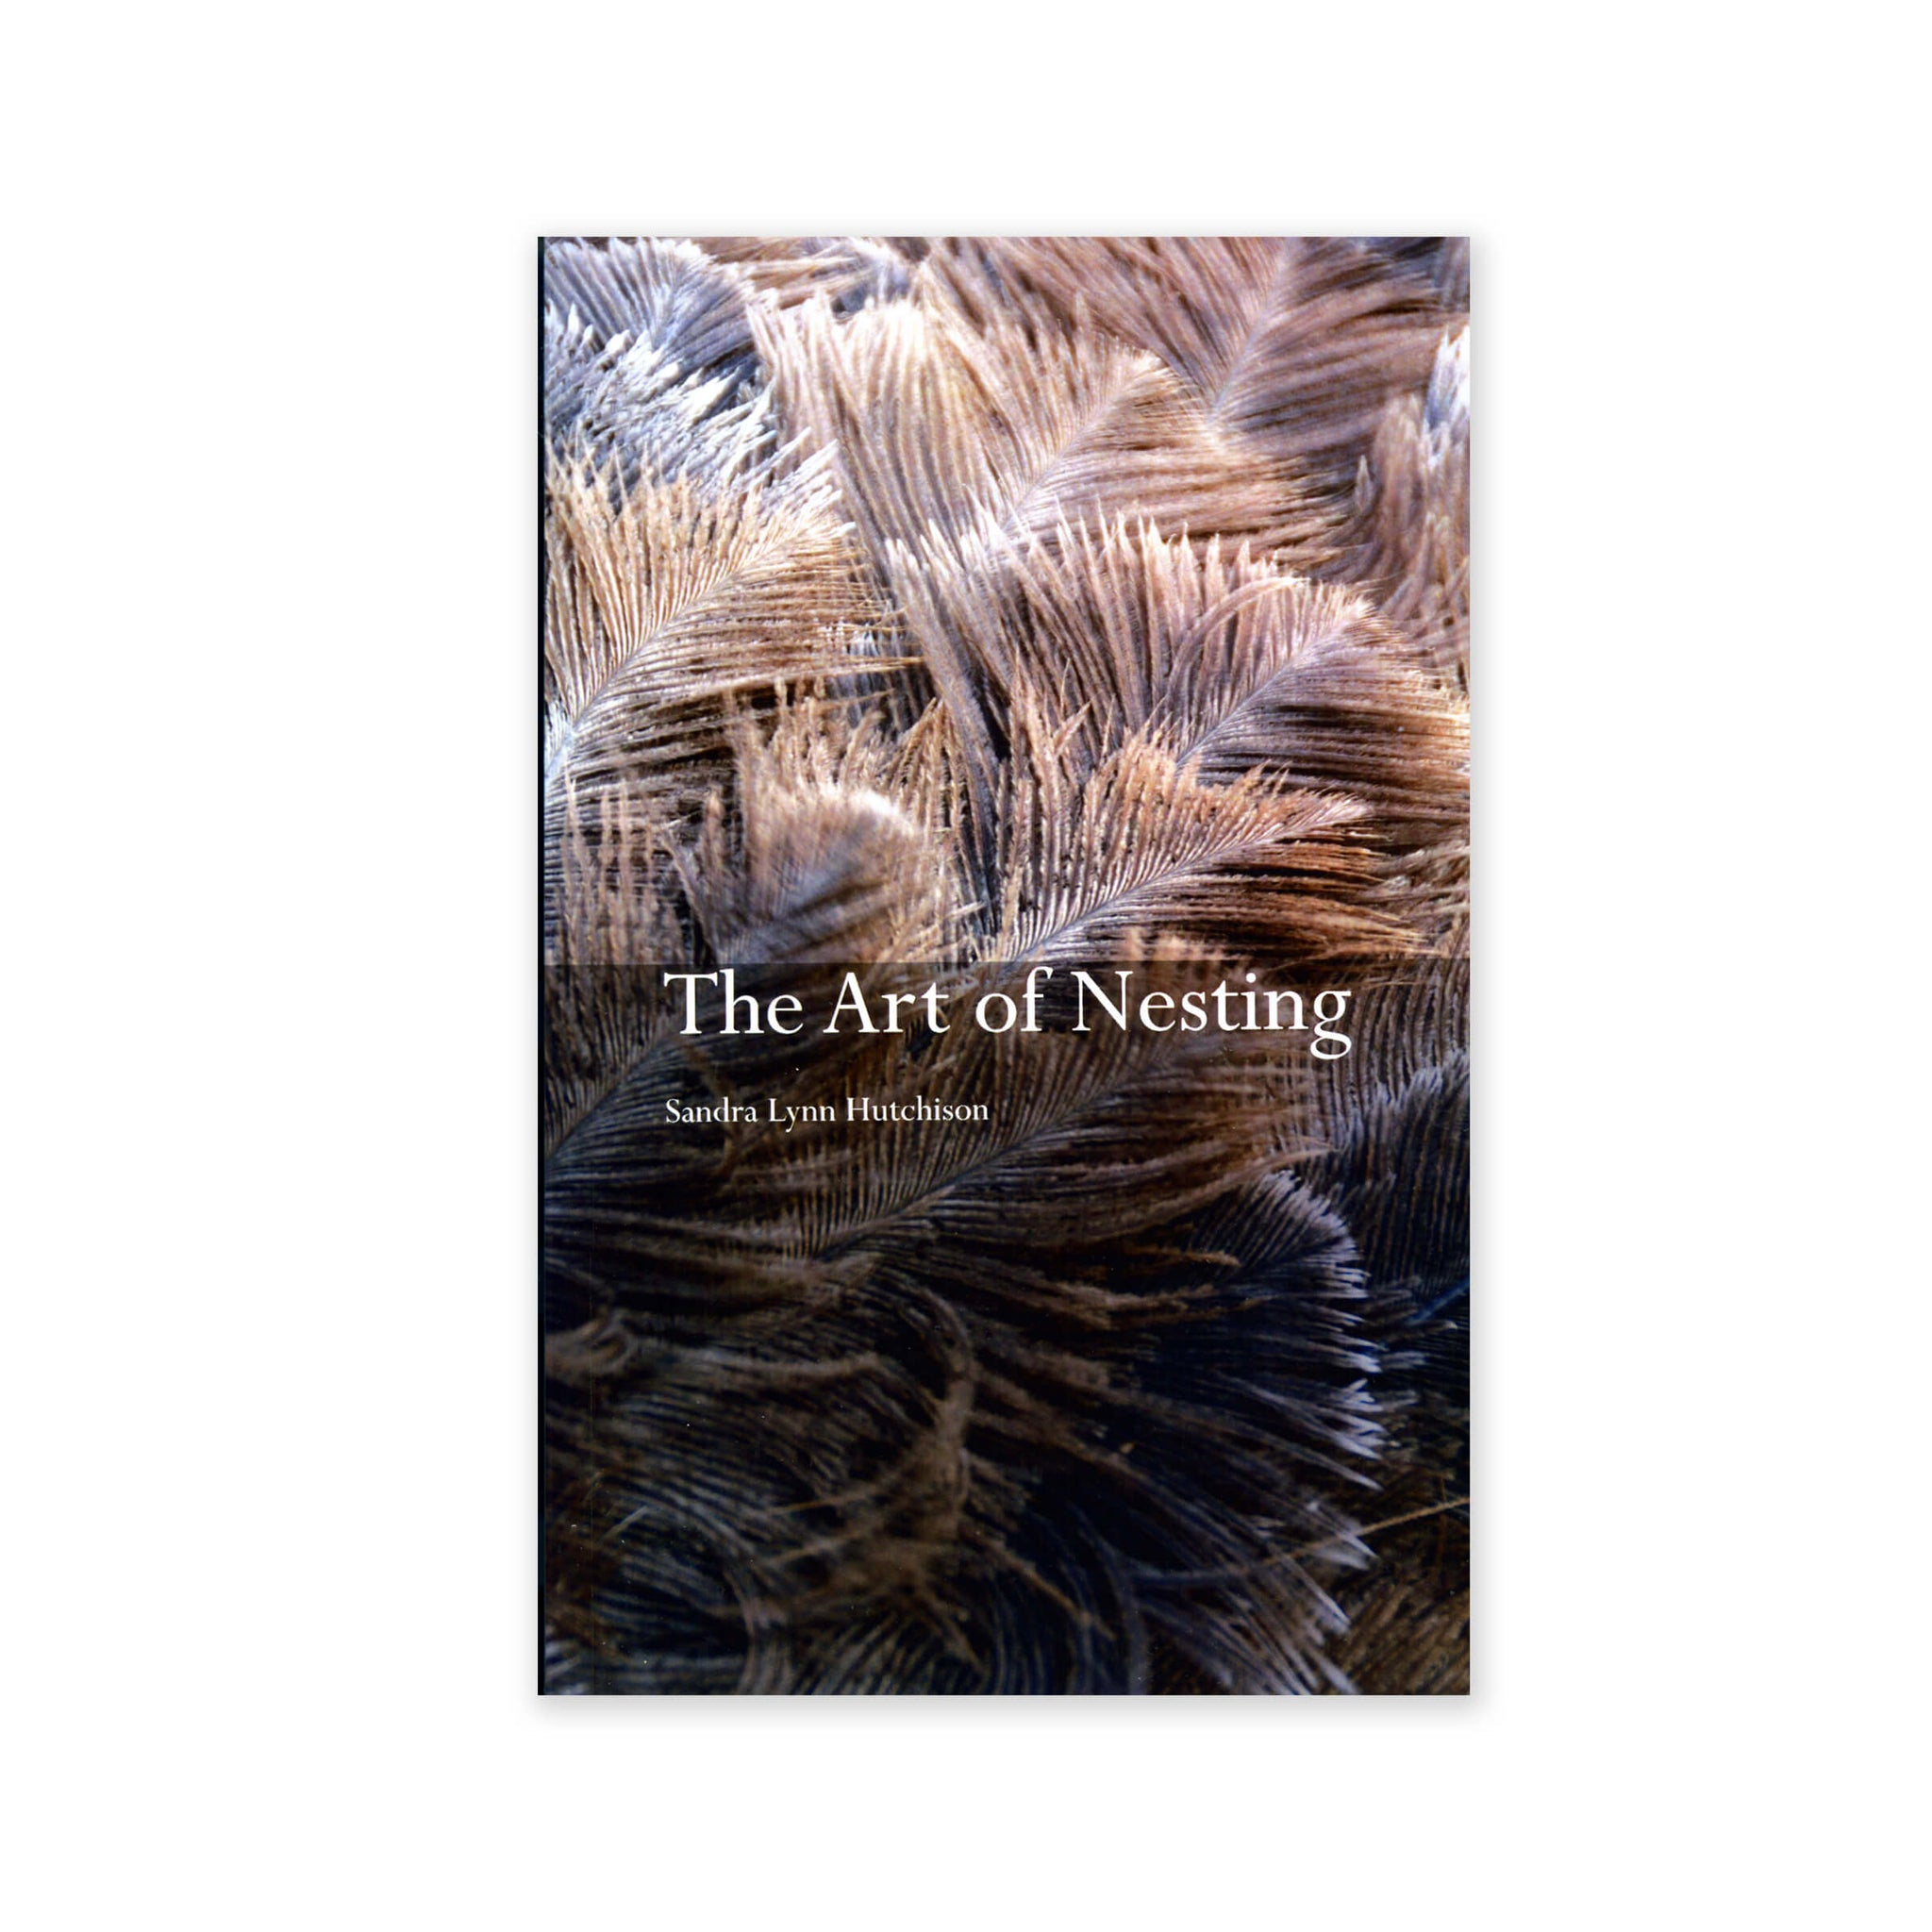 Art of Nesting - A Collection of Poetry